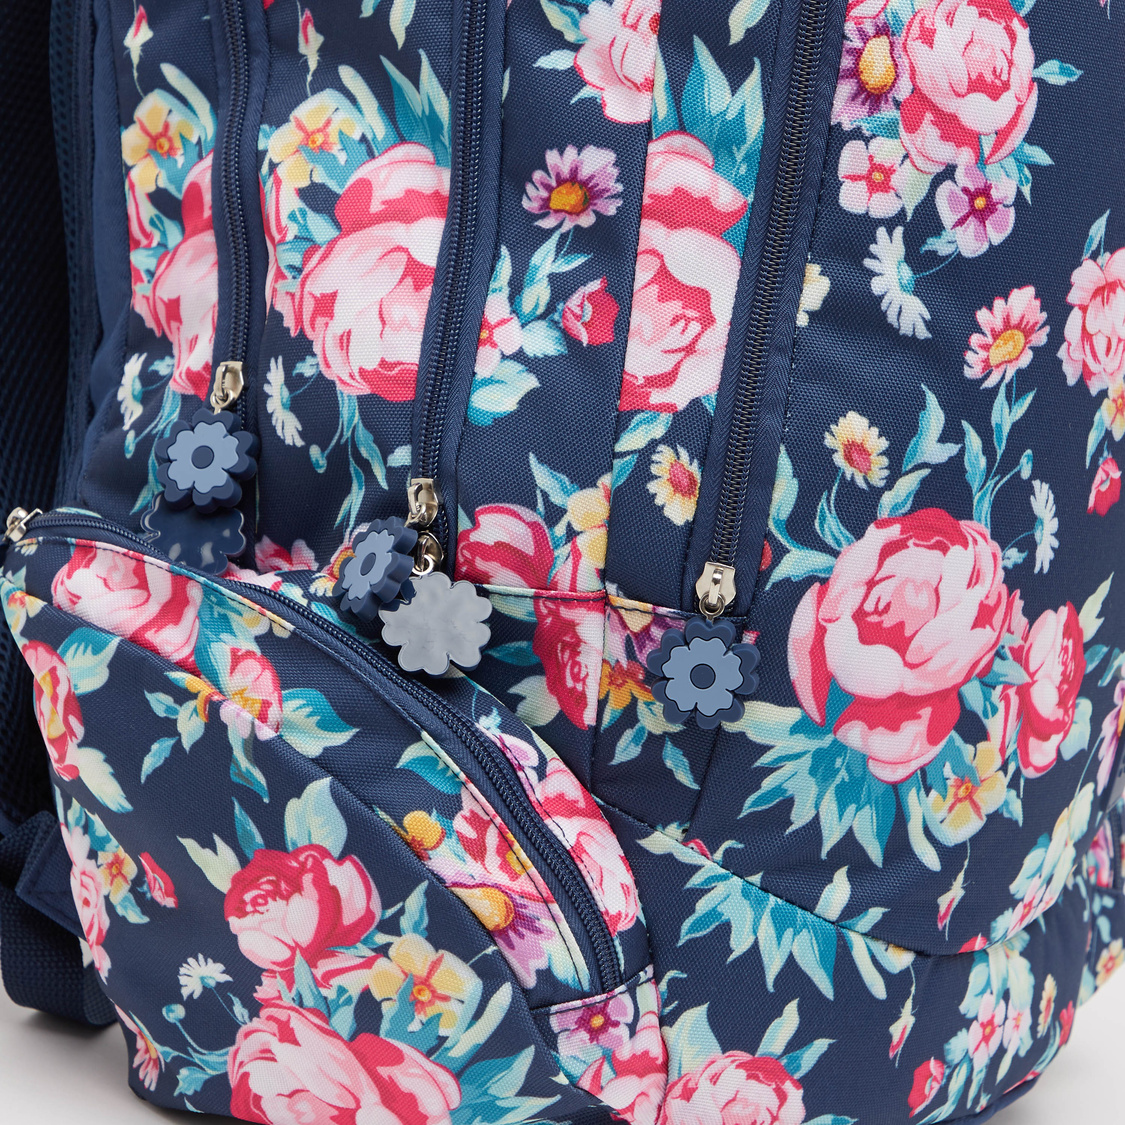 Floral Print Backpack with Adjustable Straps and Zip Closure - 19 Inches